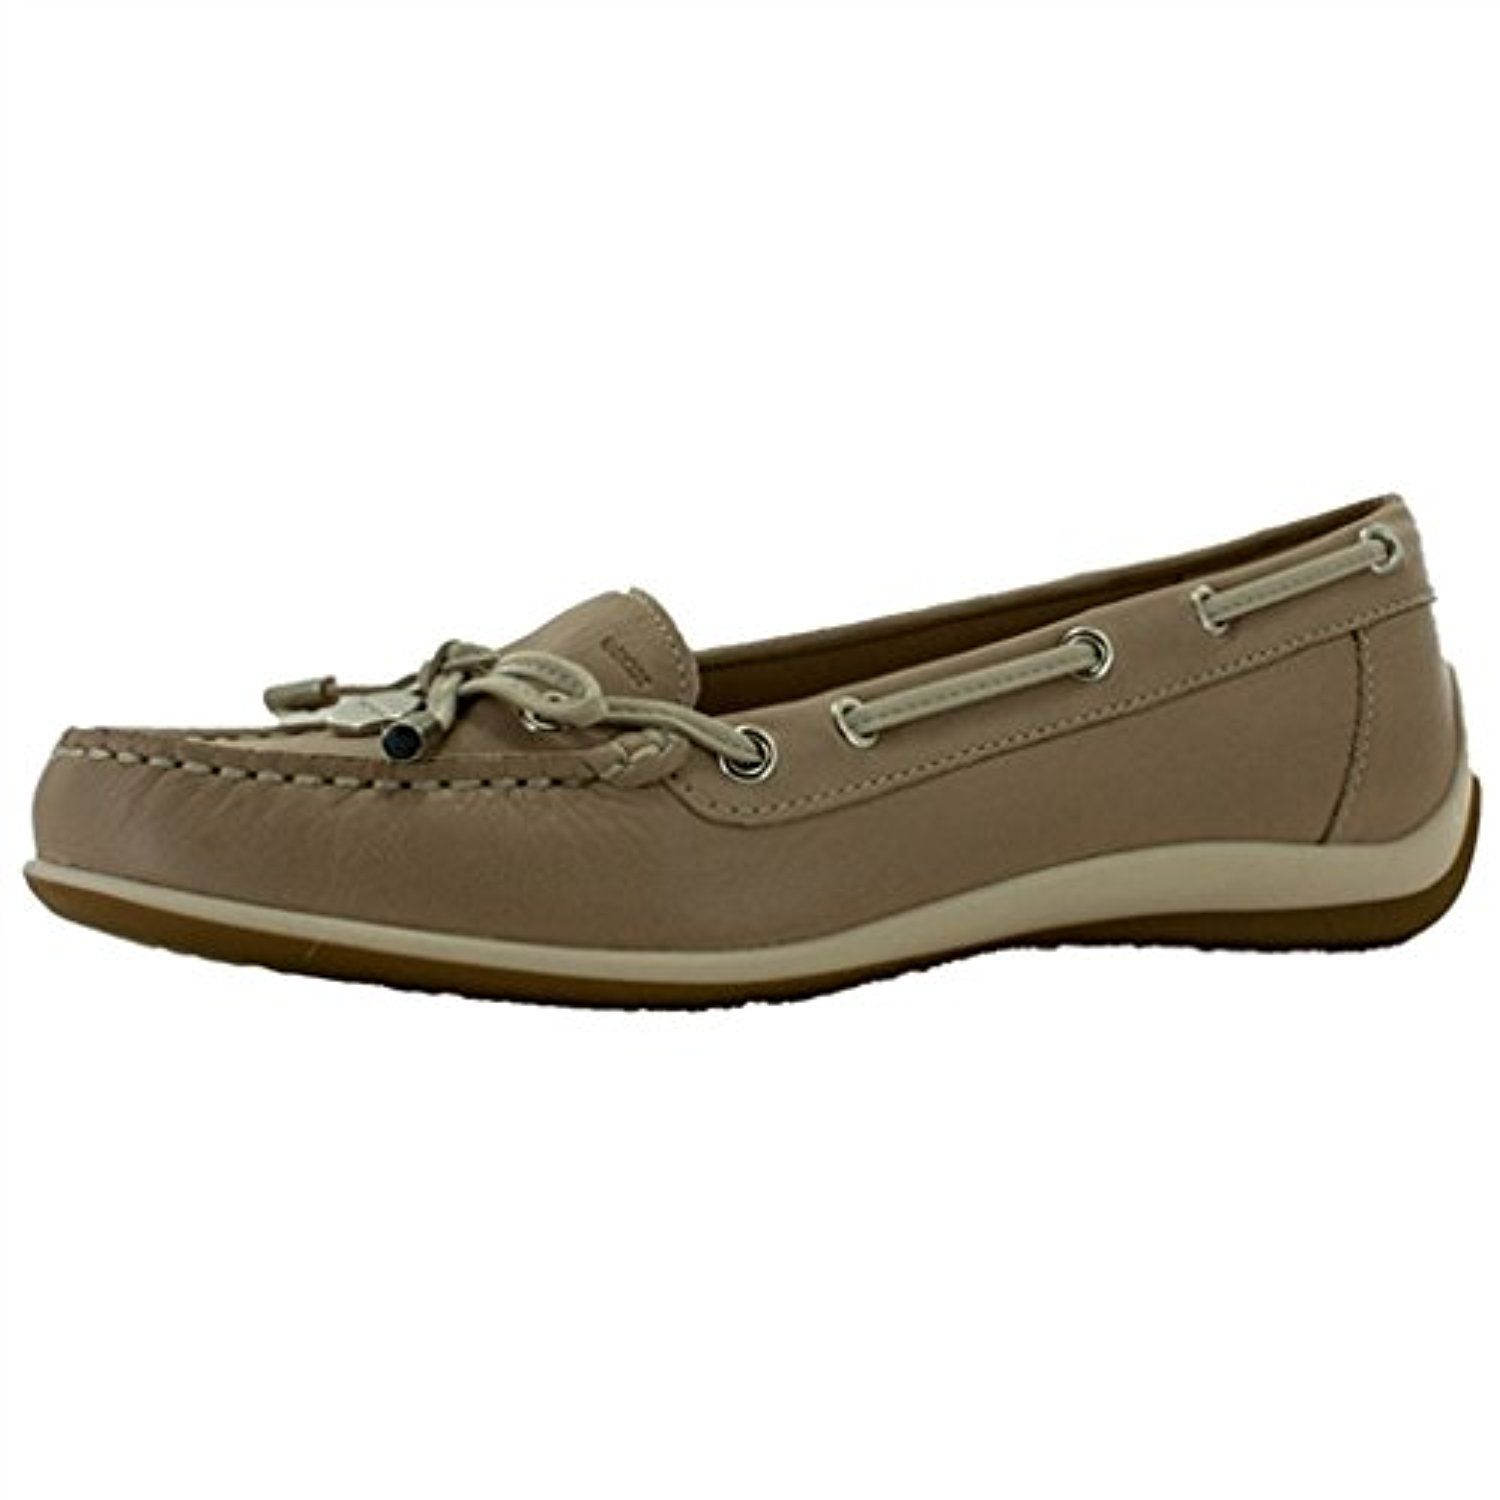 Lescahiersdalter Mocassin Chaussure Amazon Femme Geox mNvn80wO